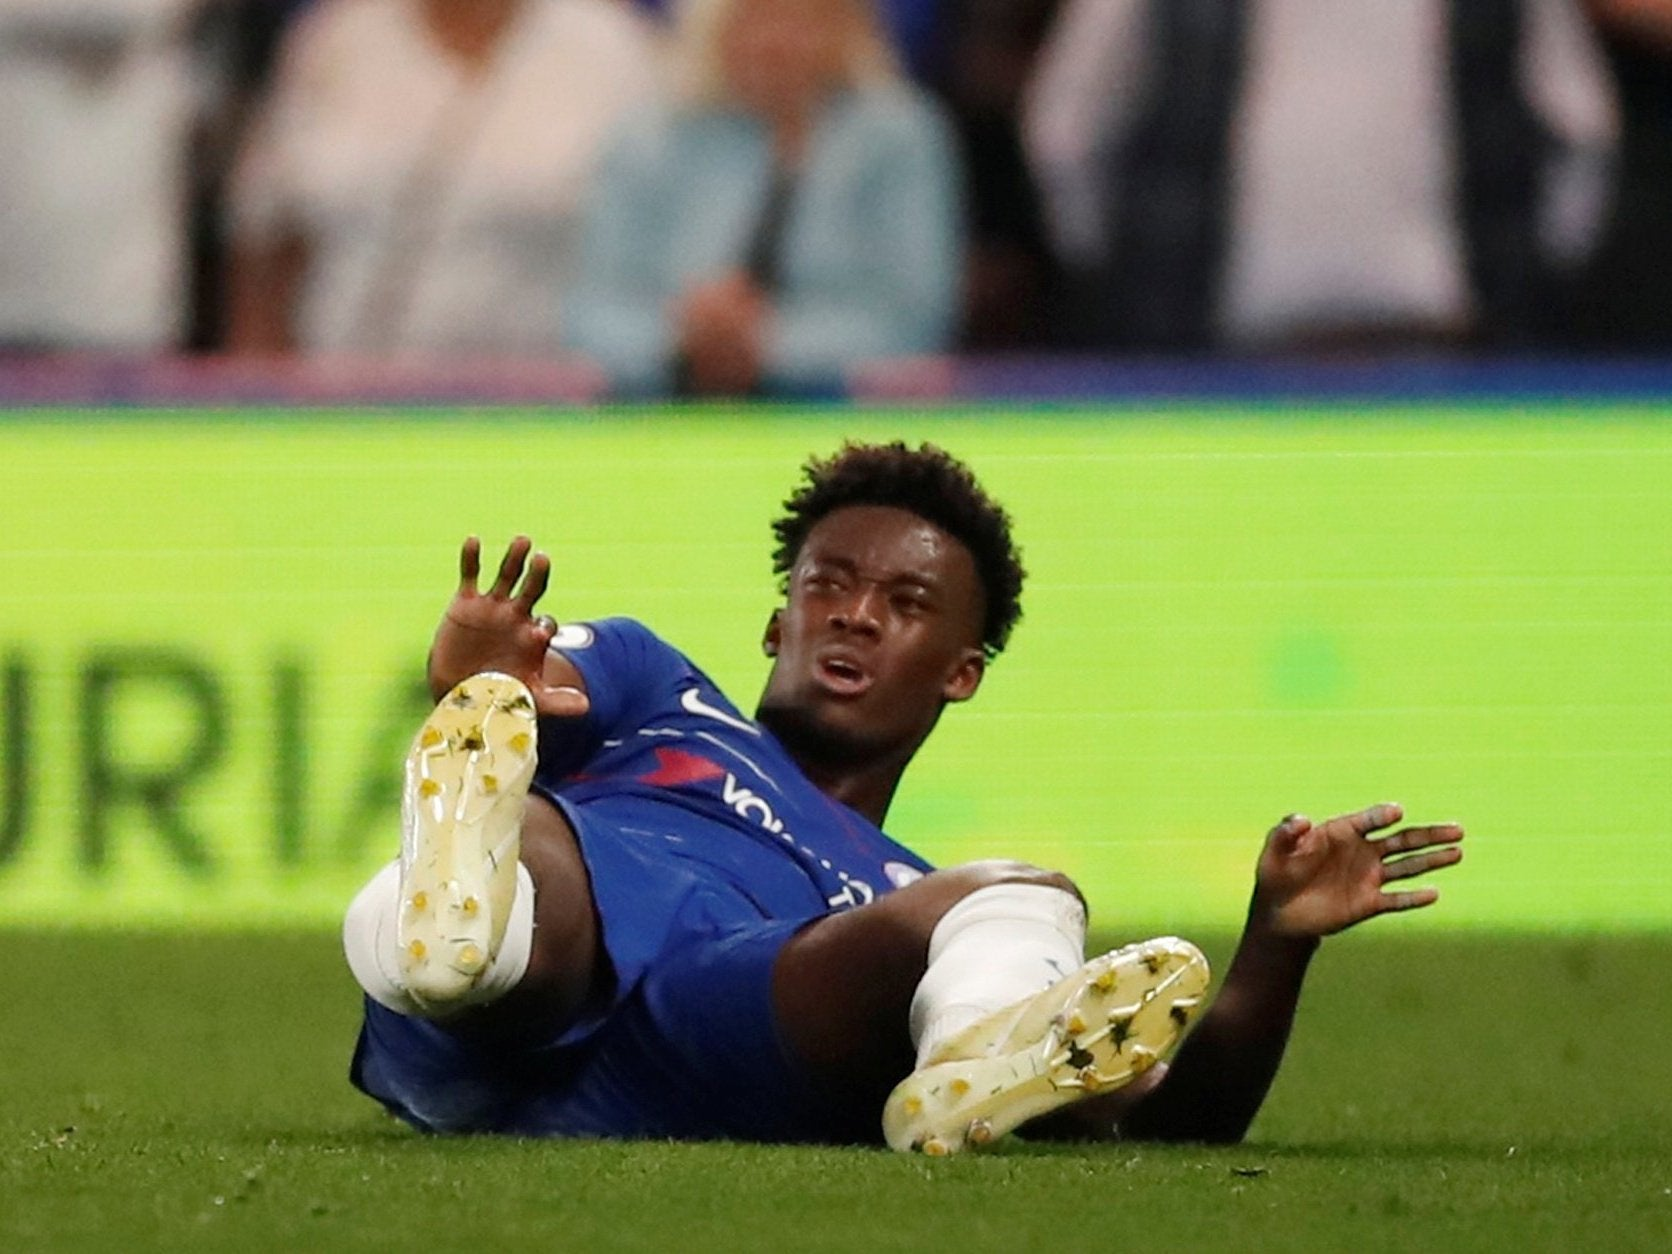 Callum Hudson-Odoi injury: Chelsea winger confirms he suffered